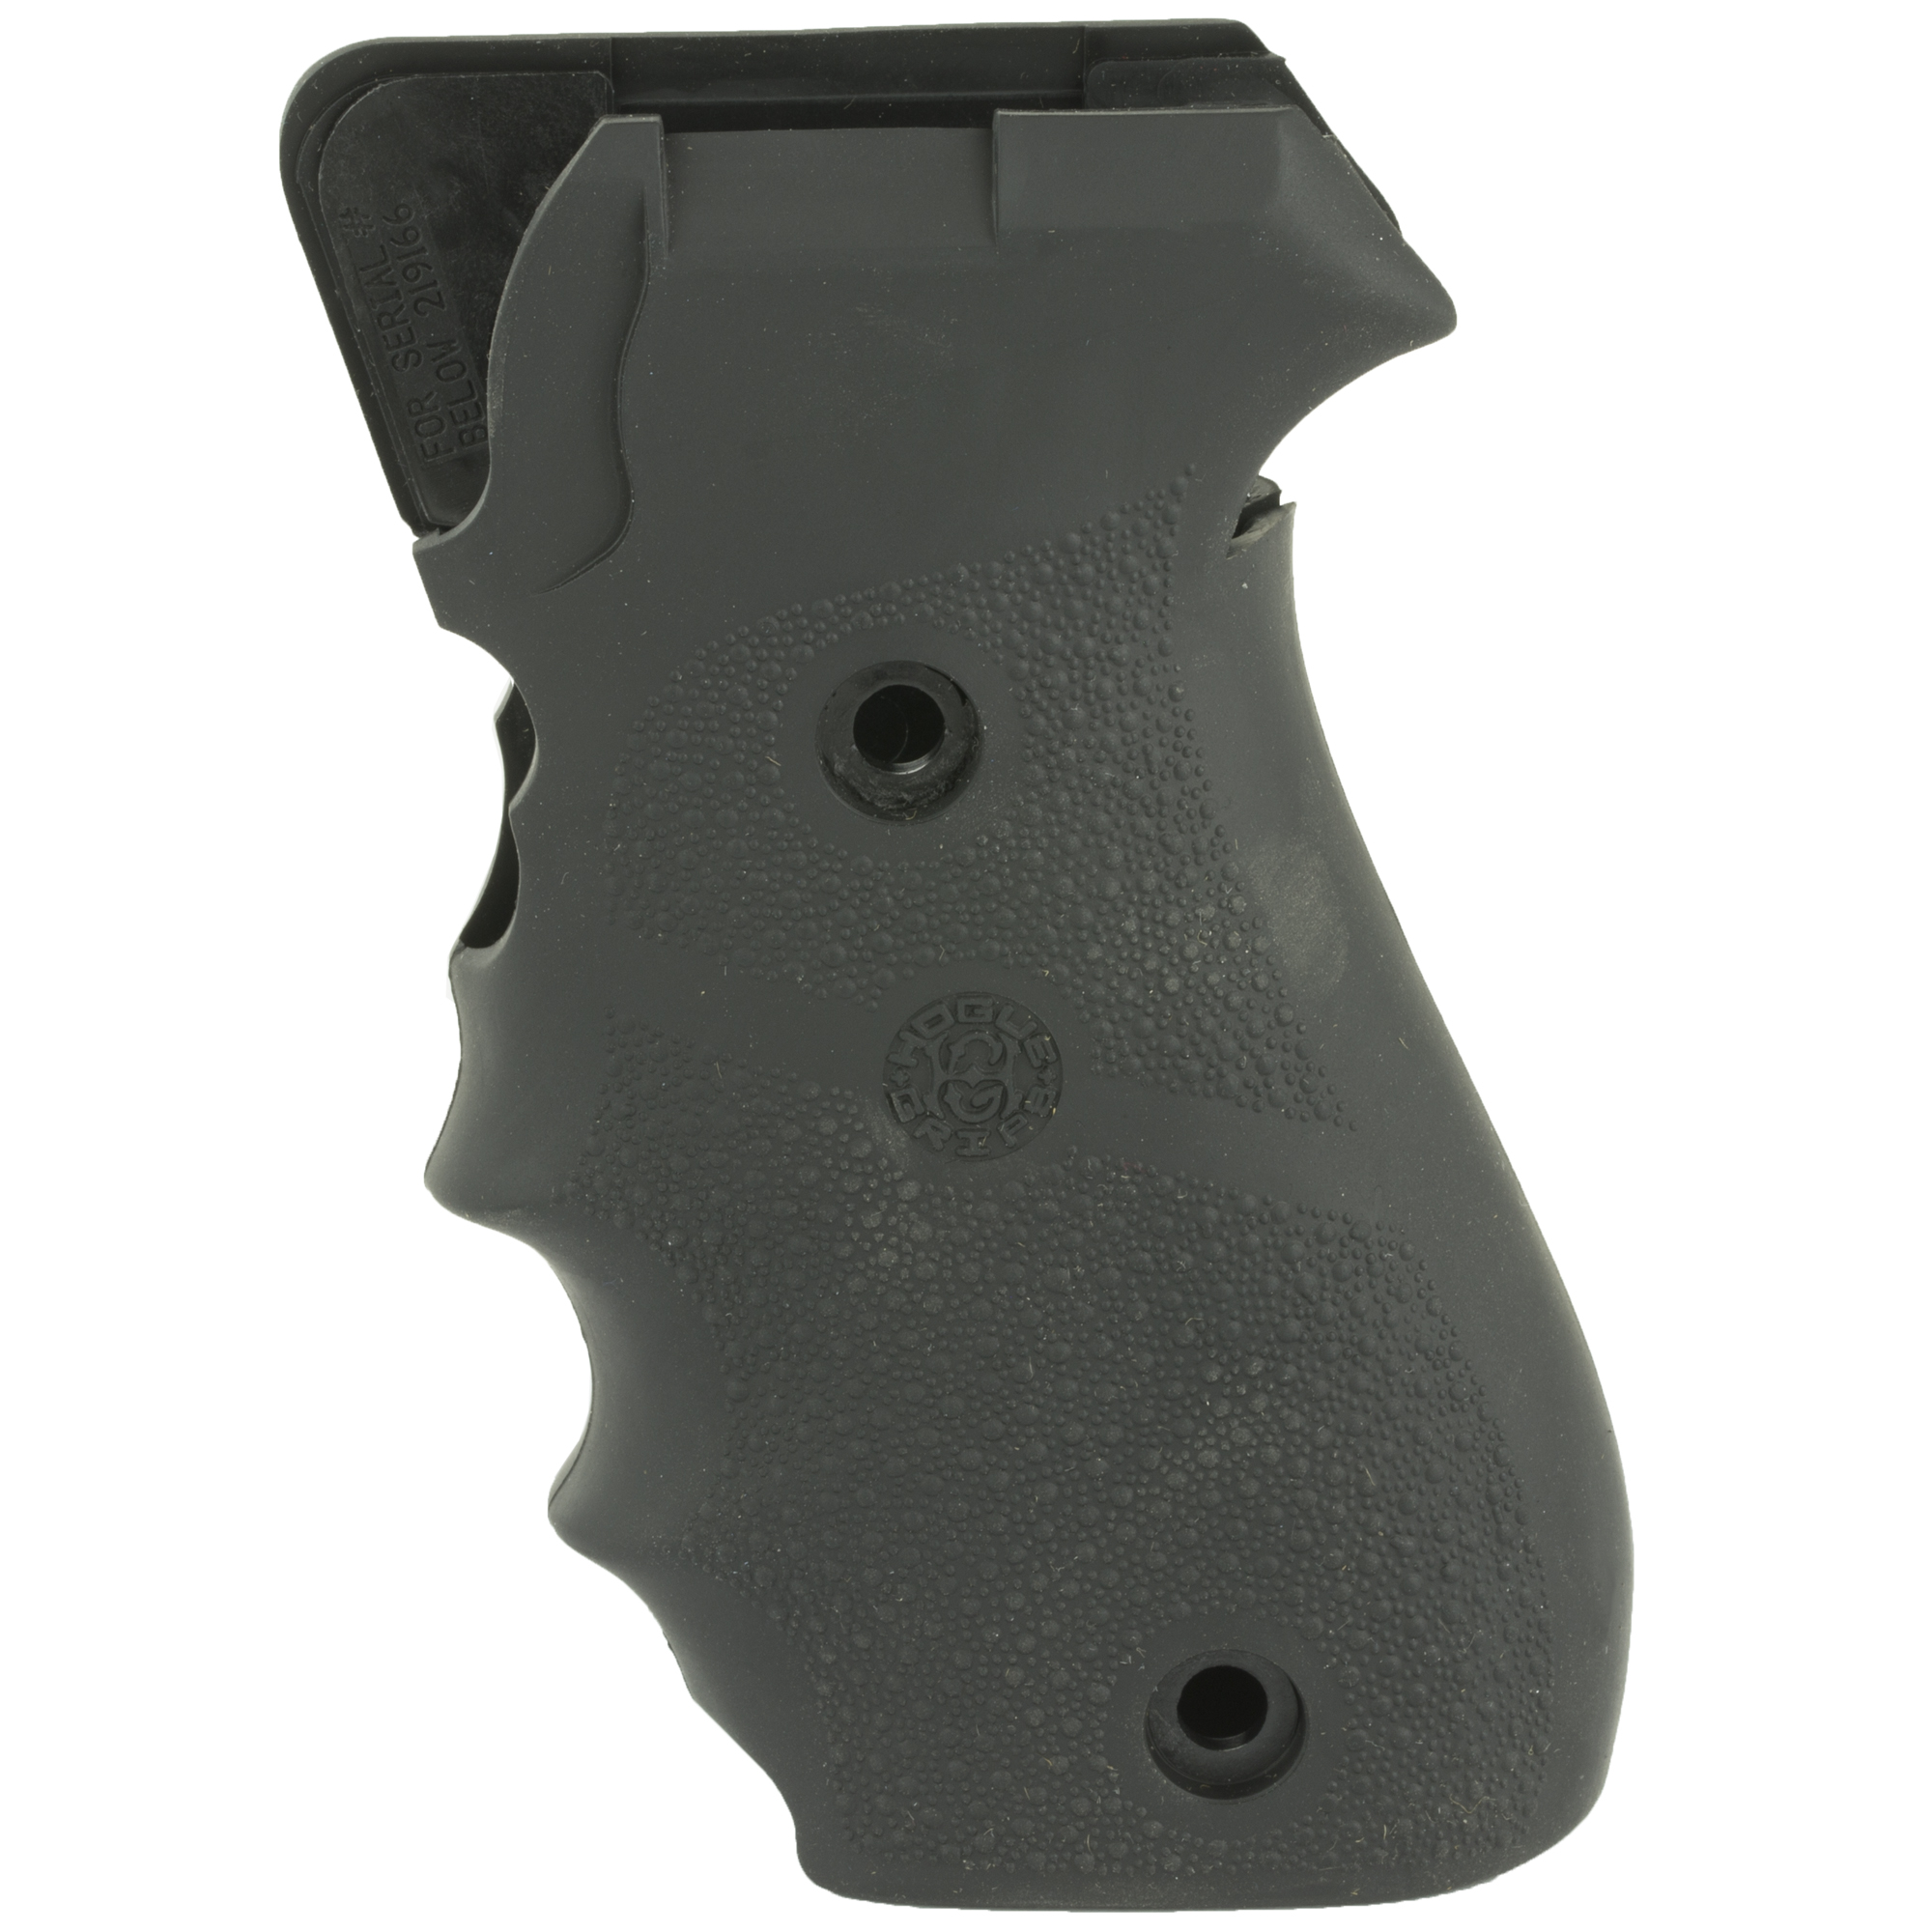 "Hogue's Monogrip with Finger Grooves for SIG P220 is molded from a durable synthetic rubber that is not spongy or tacky"" but gives that soft recoil absorbing feel"" without affecting accuracy. This modern rubber requires a completely different molding process than ordinary neoprene and results in a much superior grip. The material they use does not come apart or deteriorate and is resistant to all solvents and oils used around firearms. Hogue Grips give you a lasting precision fit and durability that will provide years of dependable service. The flexibility of their materials and molding process has allowed them to produce superior rubber grips with features that out perform all other makes."